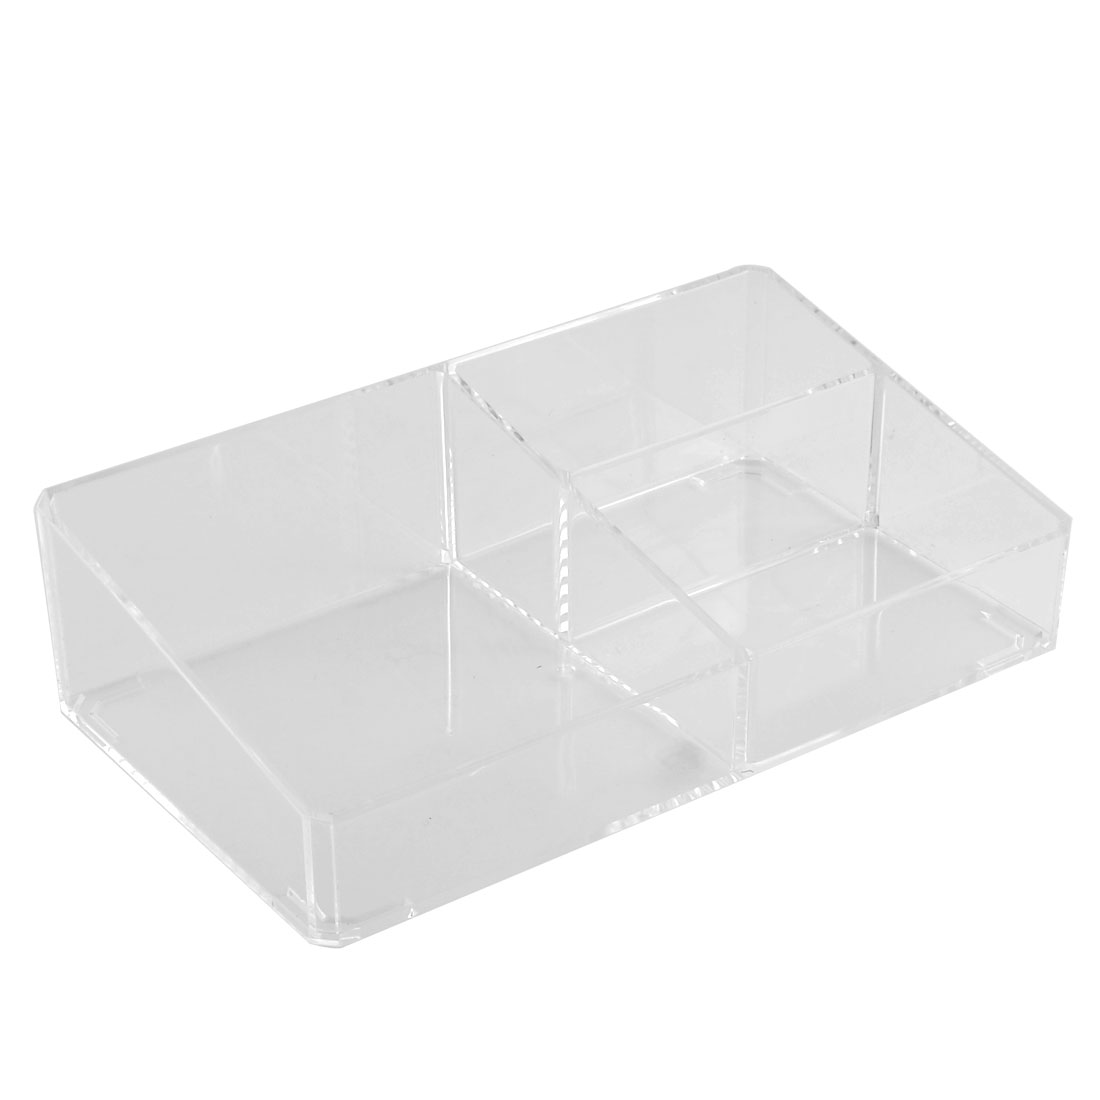 Home Acrylic Three Compartments Jewelry Case Organizer Storage Box Clear